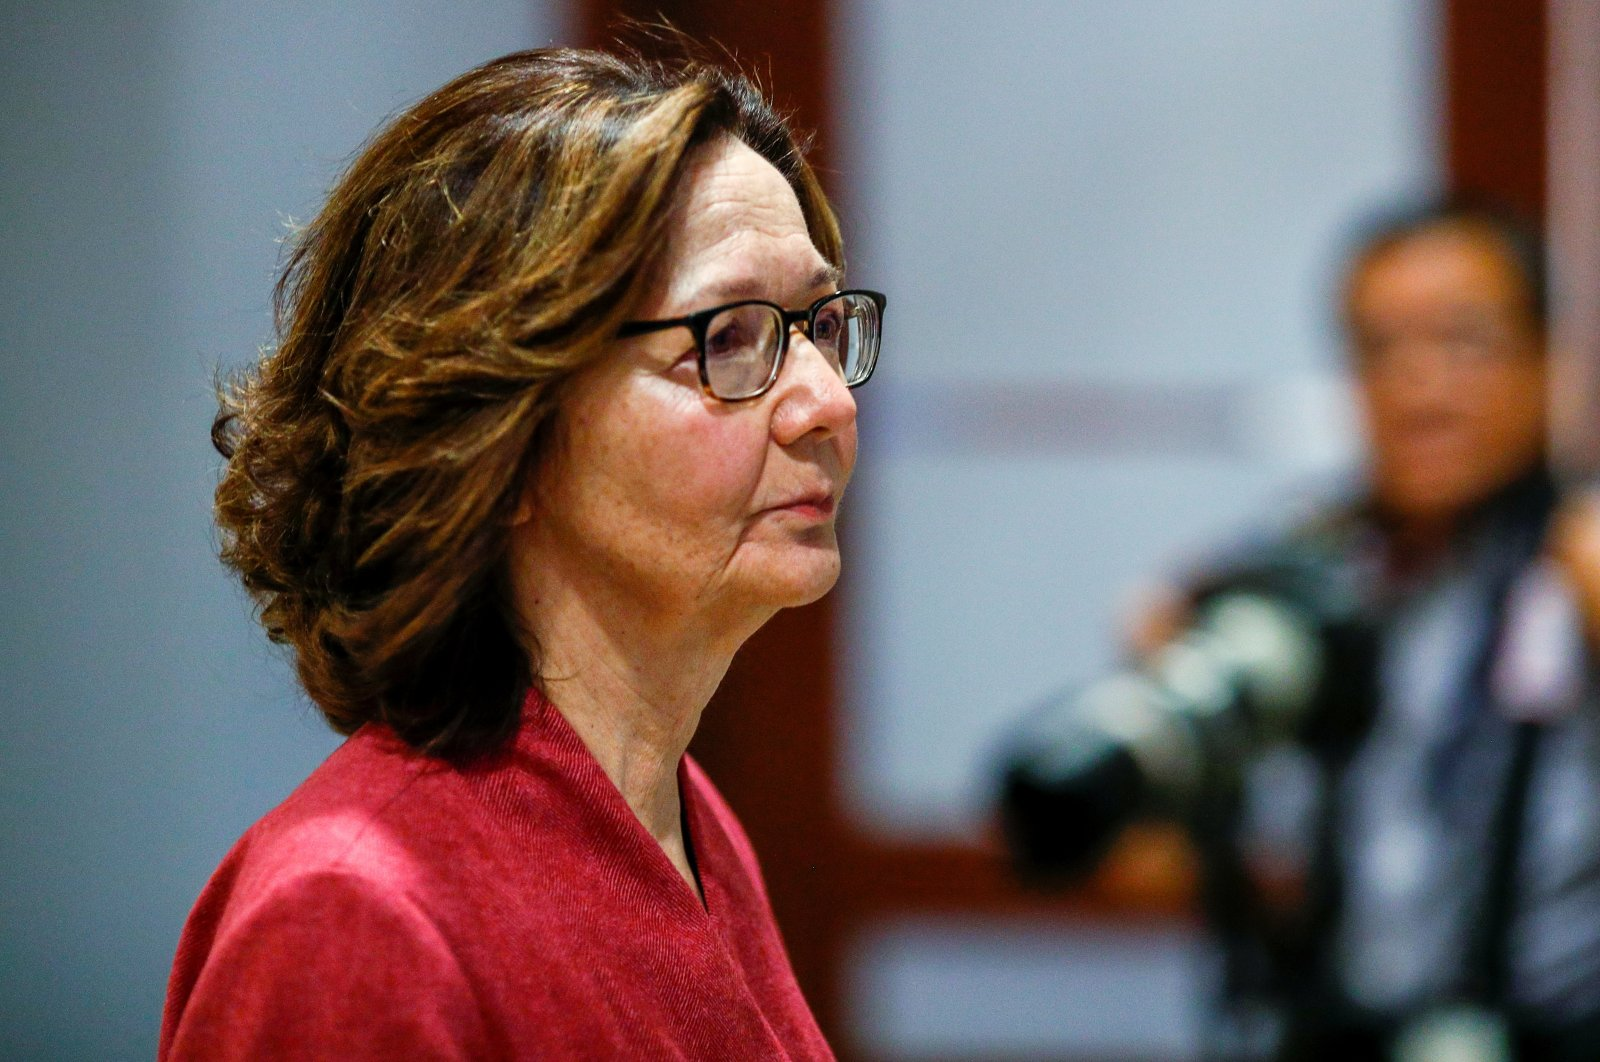 CIA Director Gina Haspel arrives to brief members of the U.S. Senate on developments with Iran after attacks by Iran on U.S. forces in Iraq, at the U.S. Capitol in Washington, D.C., Jan. 8, 2020. (Reuters Photo)